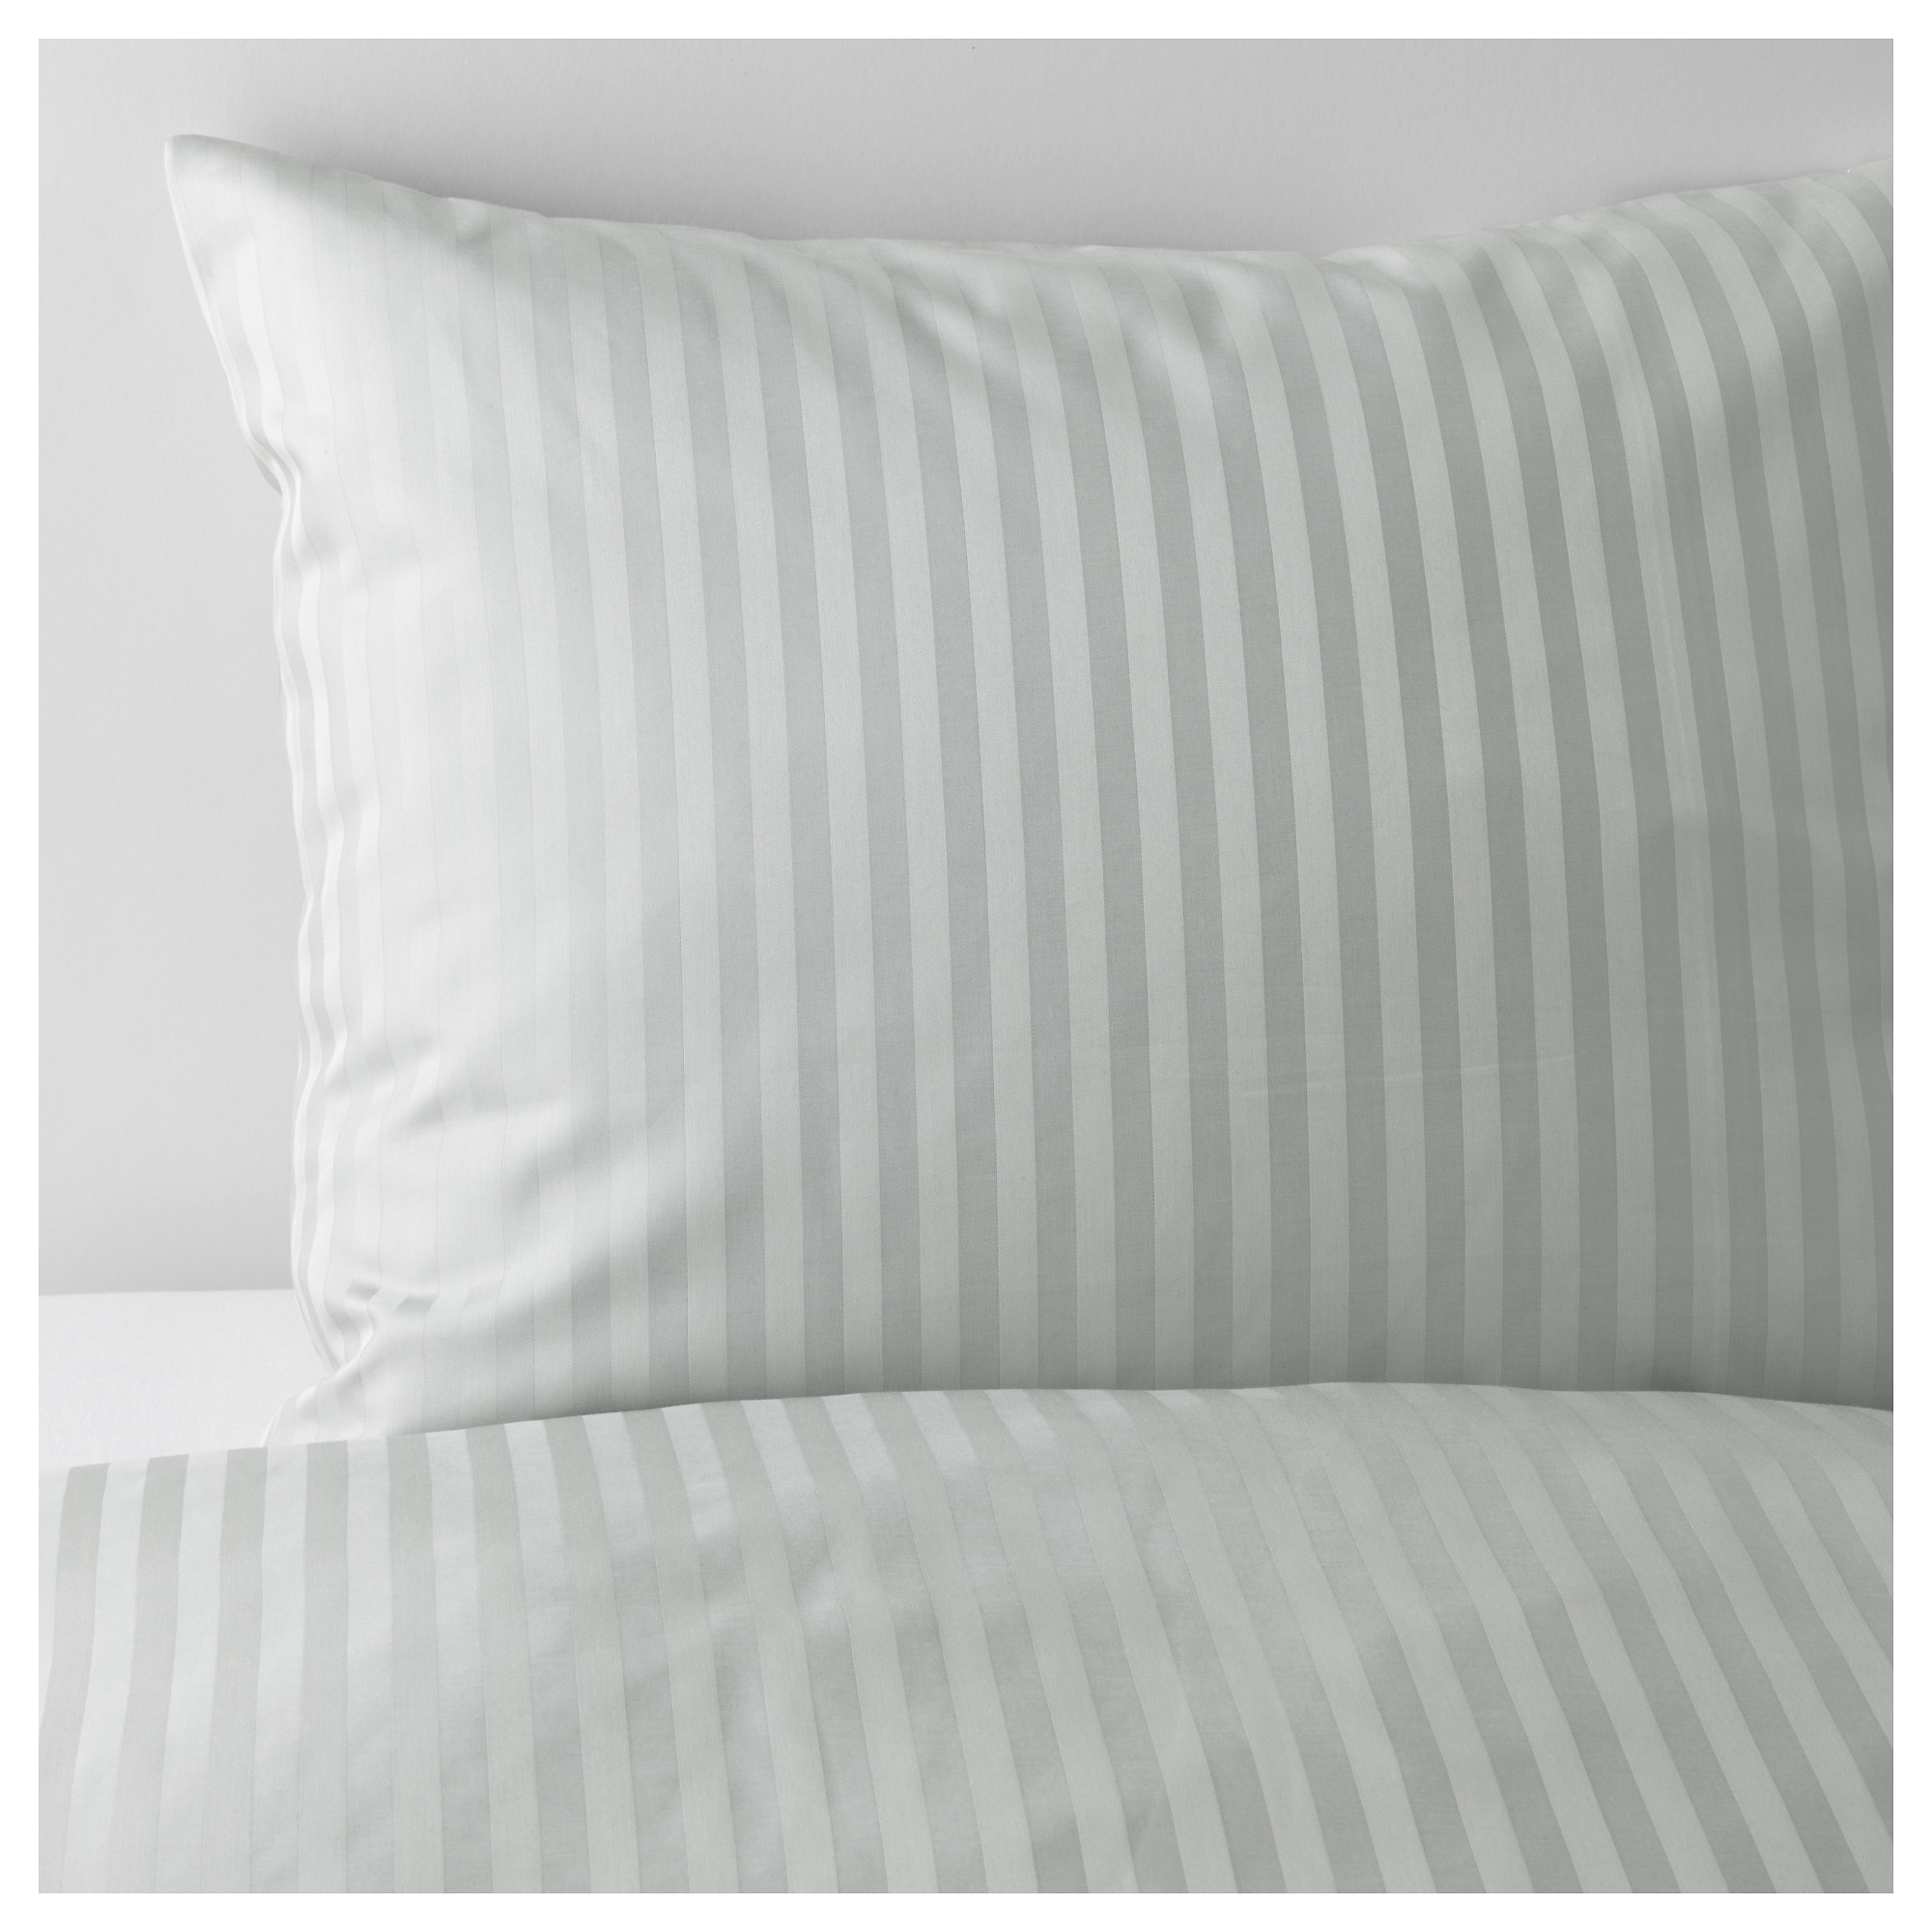 NATTJASMIN duvet cover and pillowcase(s), light gray Thread count: 310 /